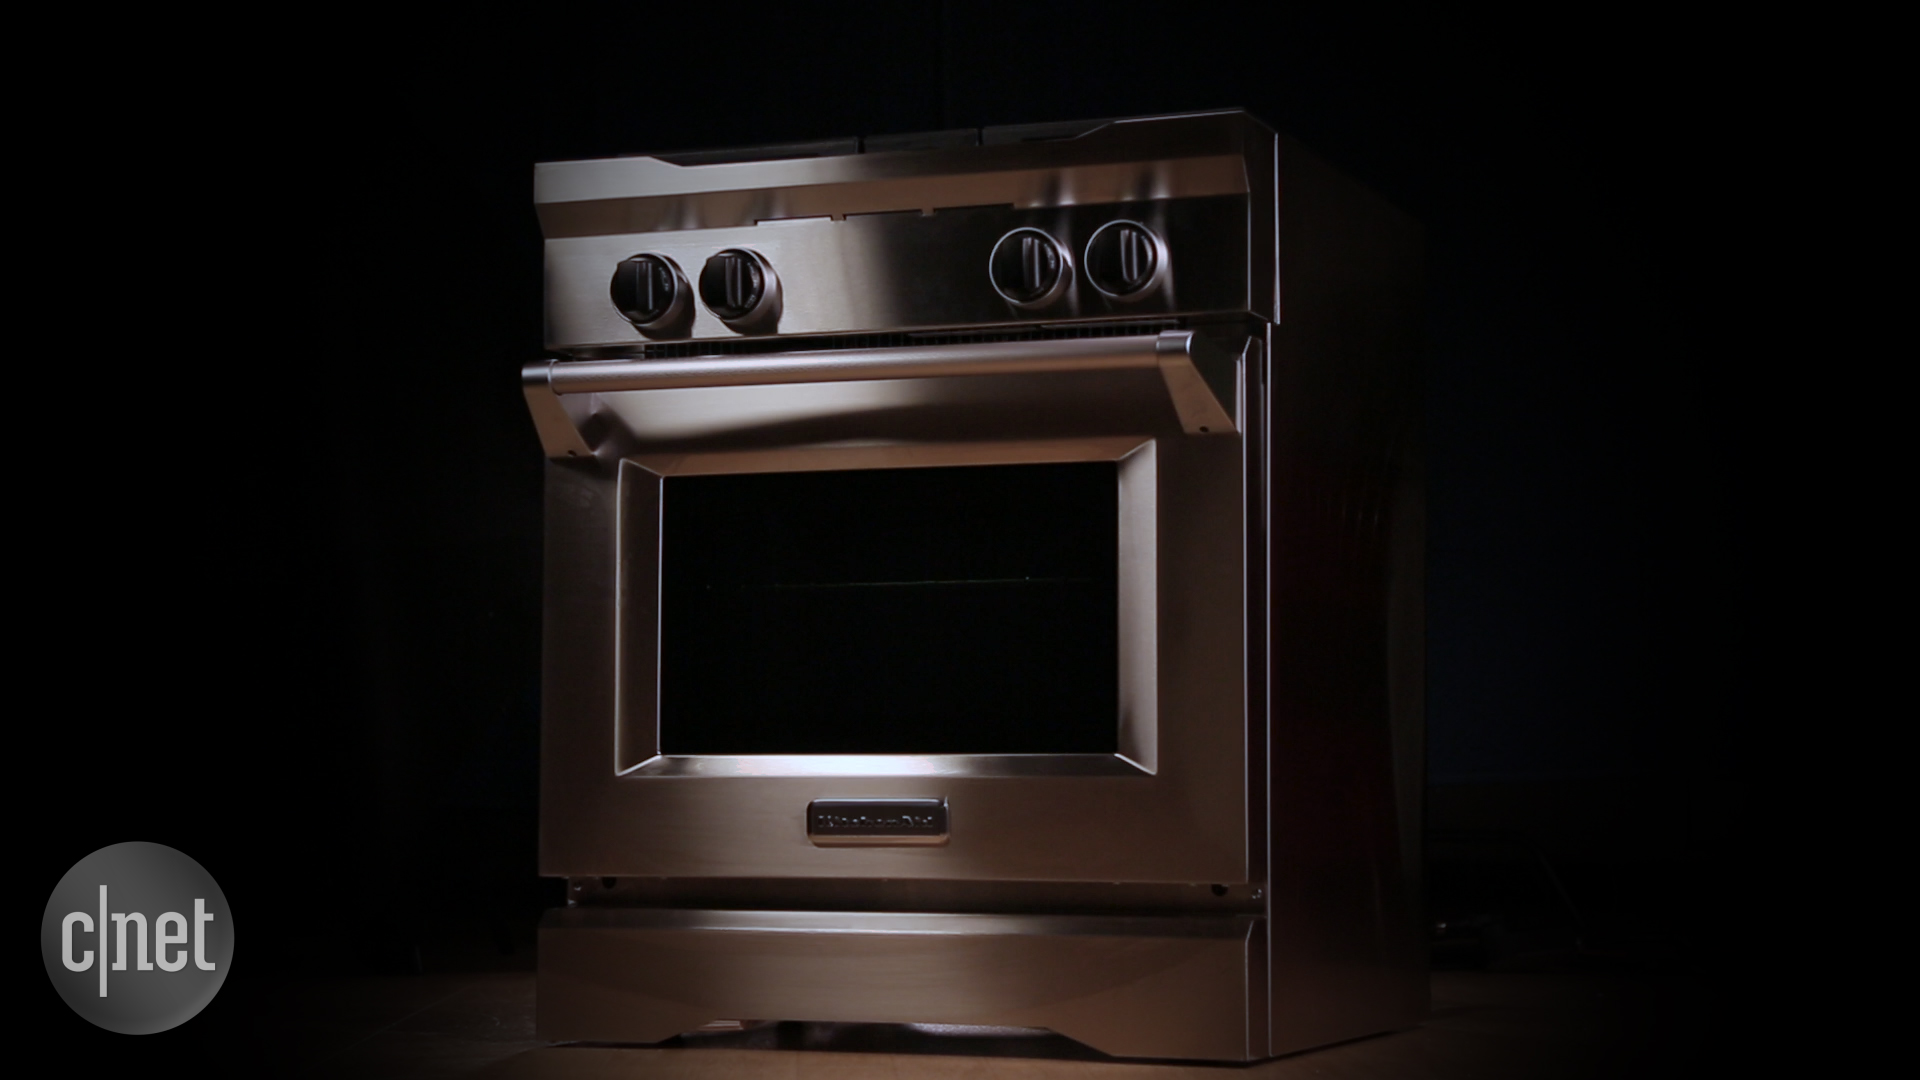 Video: Take a look at how we test ovens